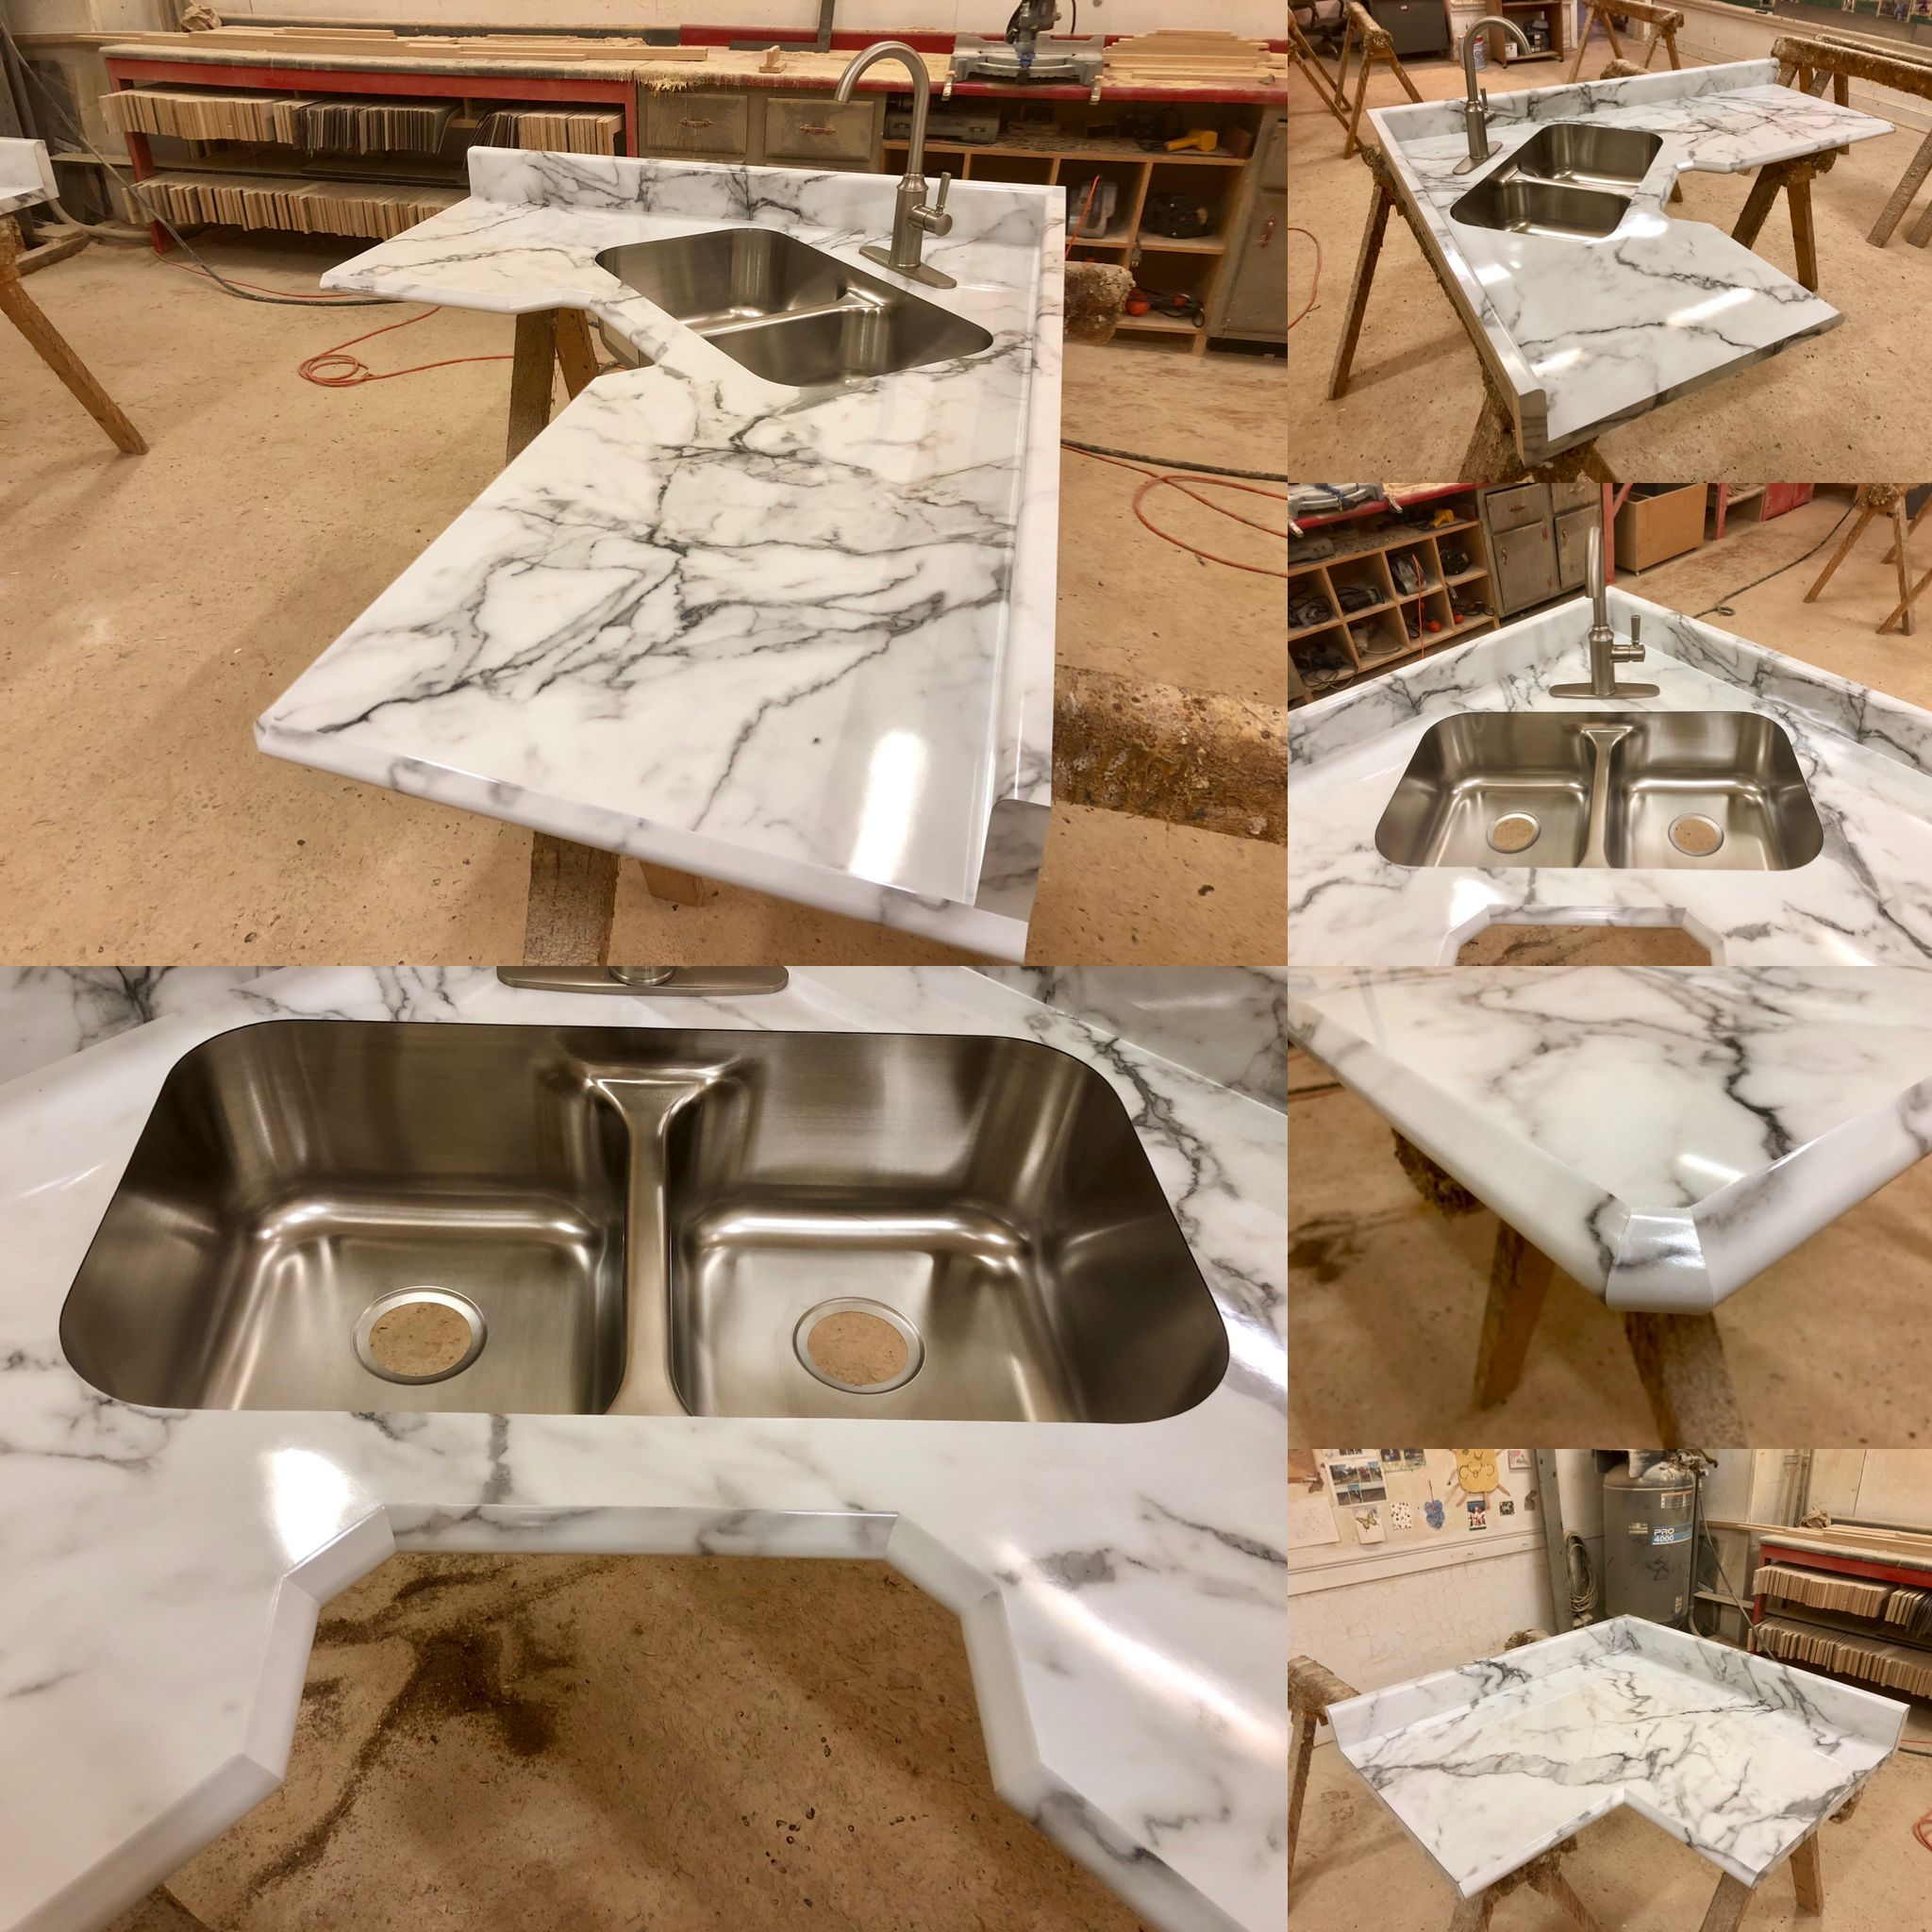 Another Beautiful Laminate Countertop All Manufactured Here At Poneys S This Countertop Is In Formica S Calcutta Mar Laminate Countertops Countertops Laminate